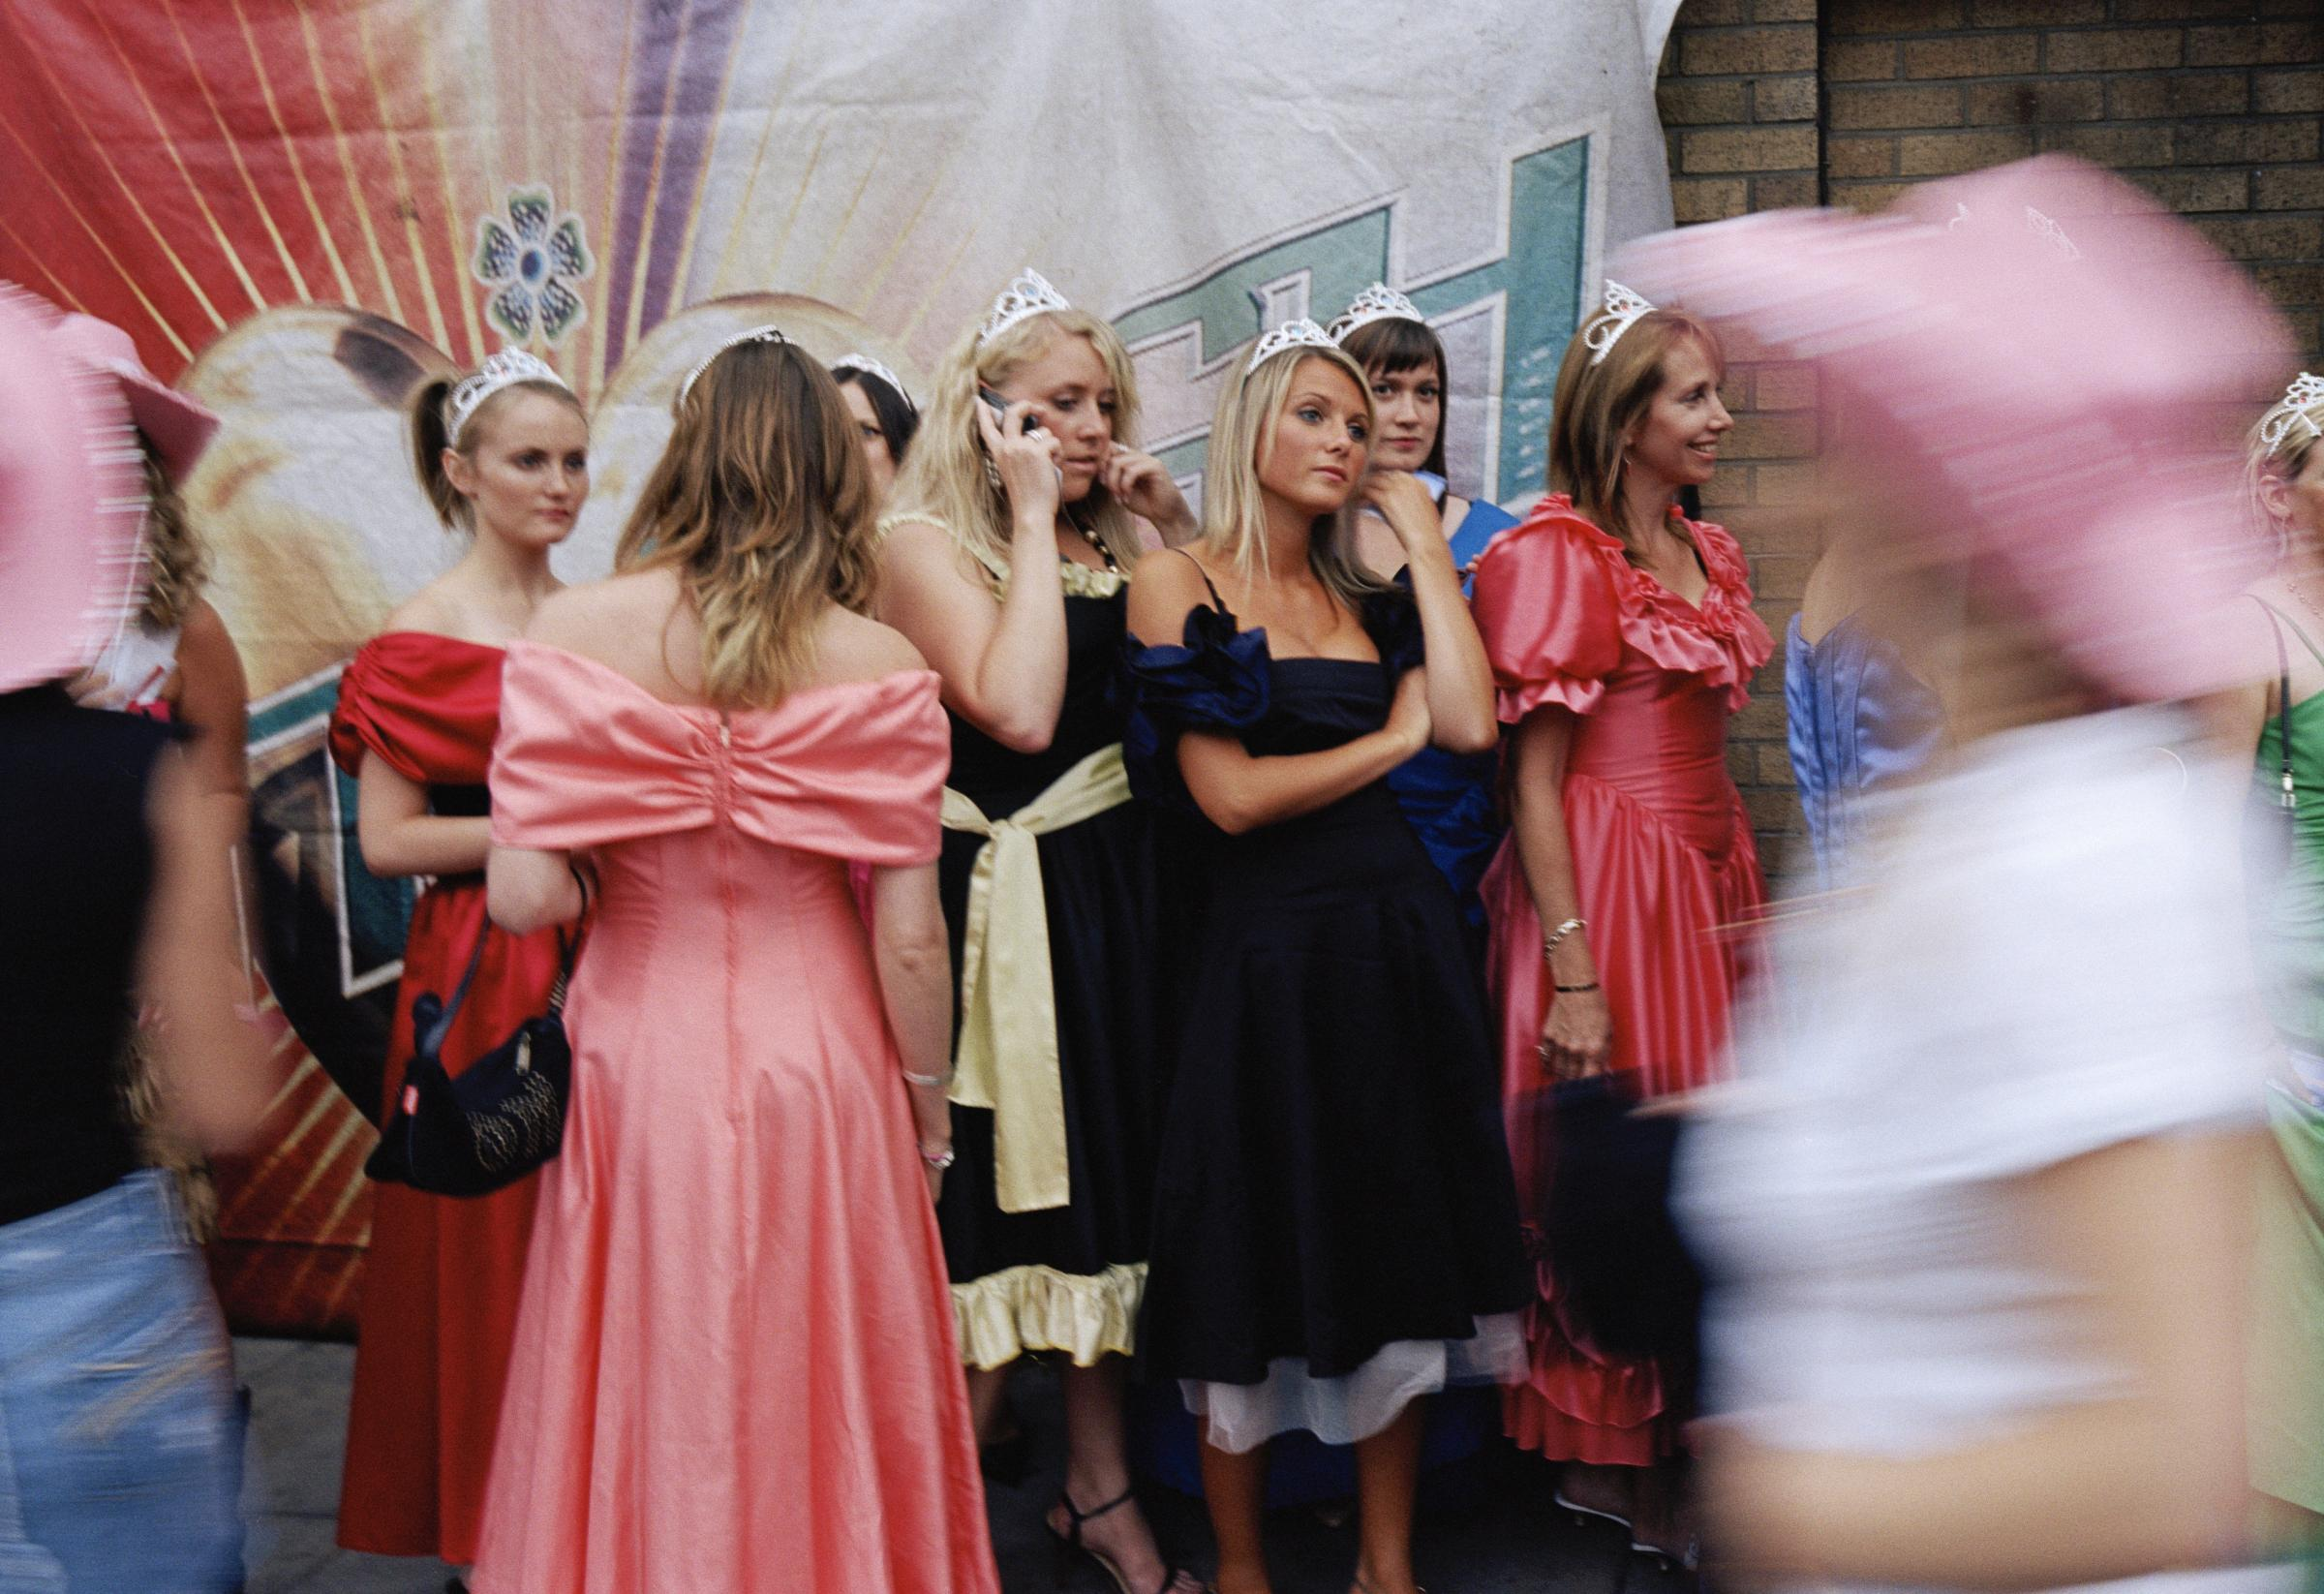 The concept of the hen party, and bidding farewell to something precious, paints a grim picture of marriage